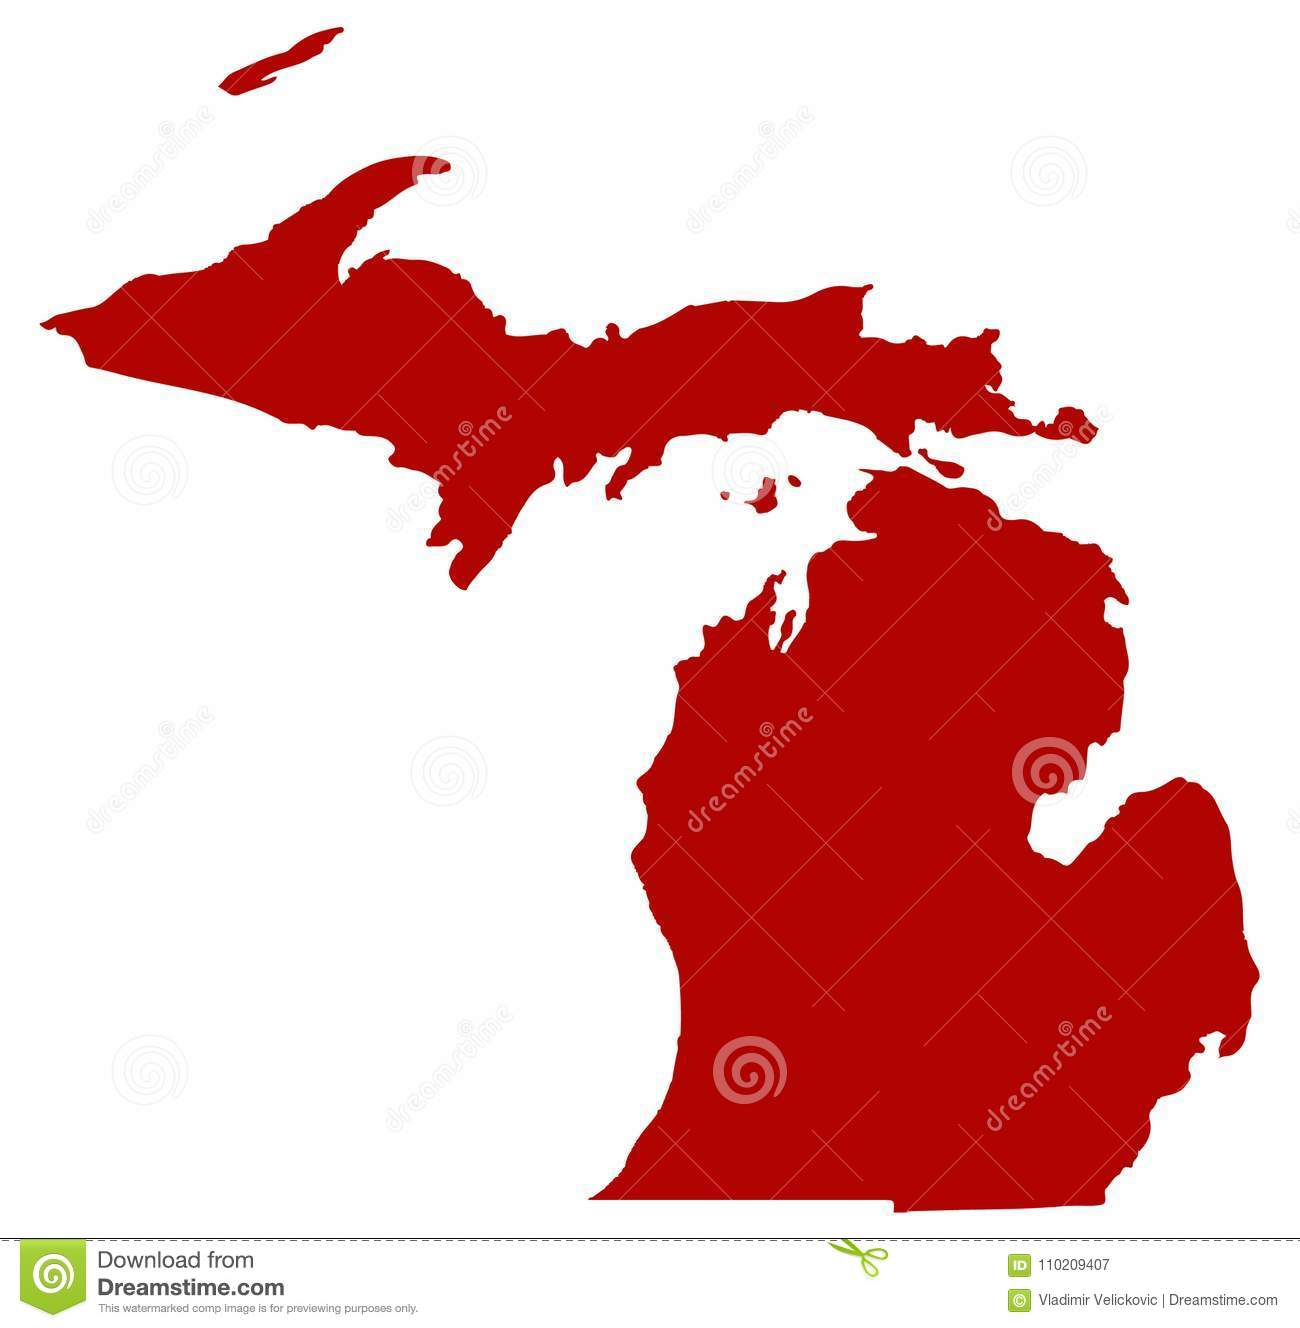 Michigan Map - State In The Great Lakes And Midwestern ...